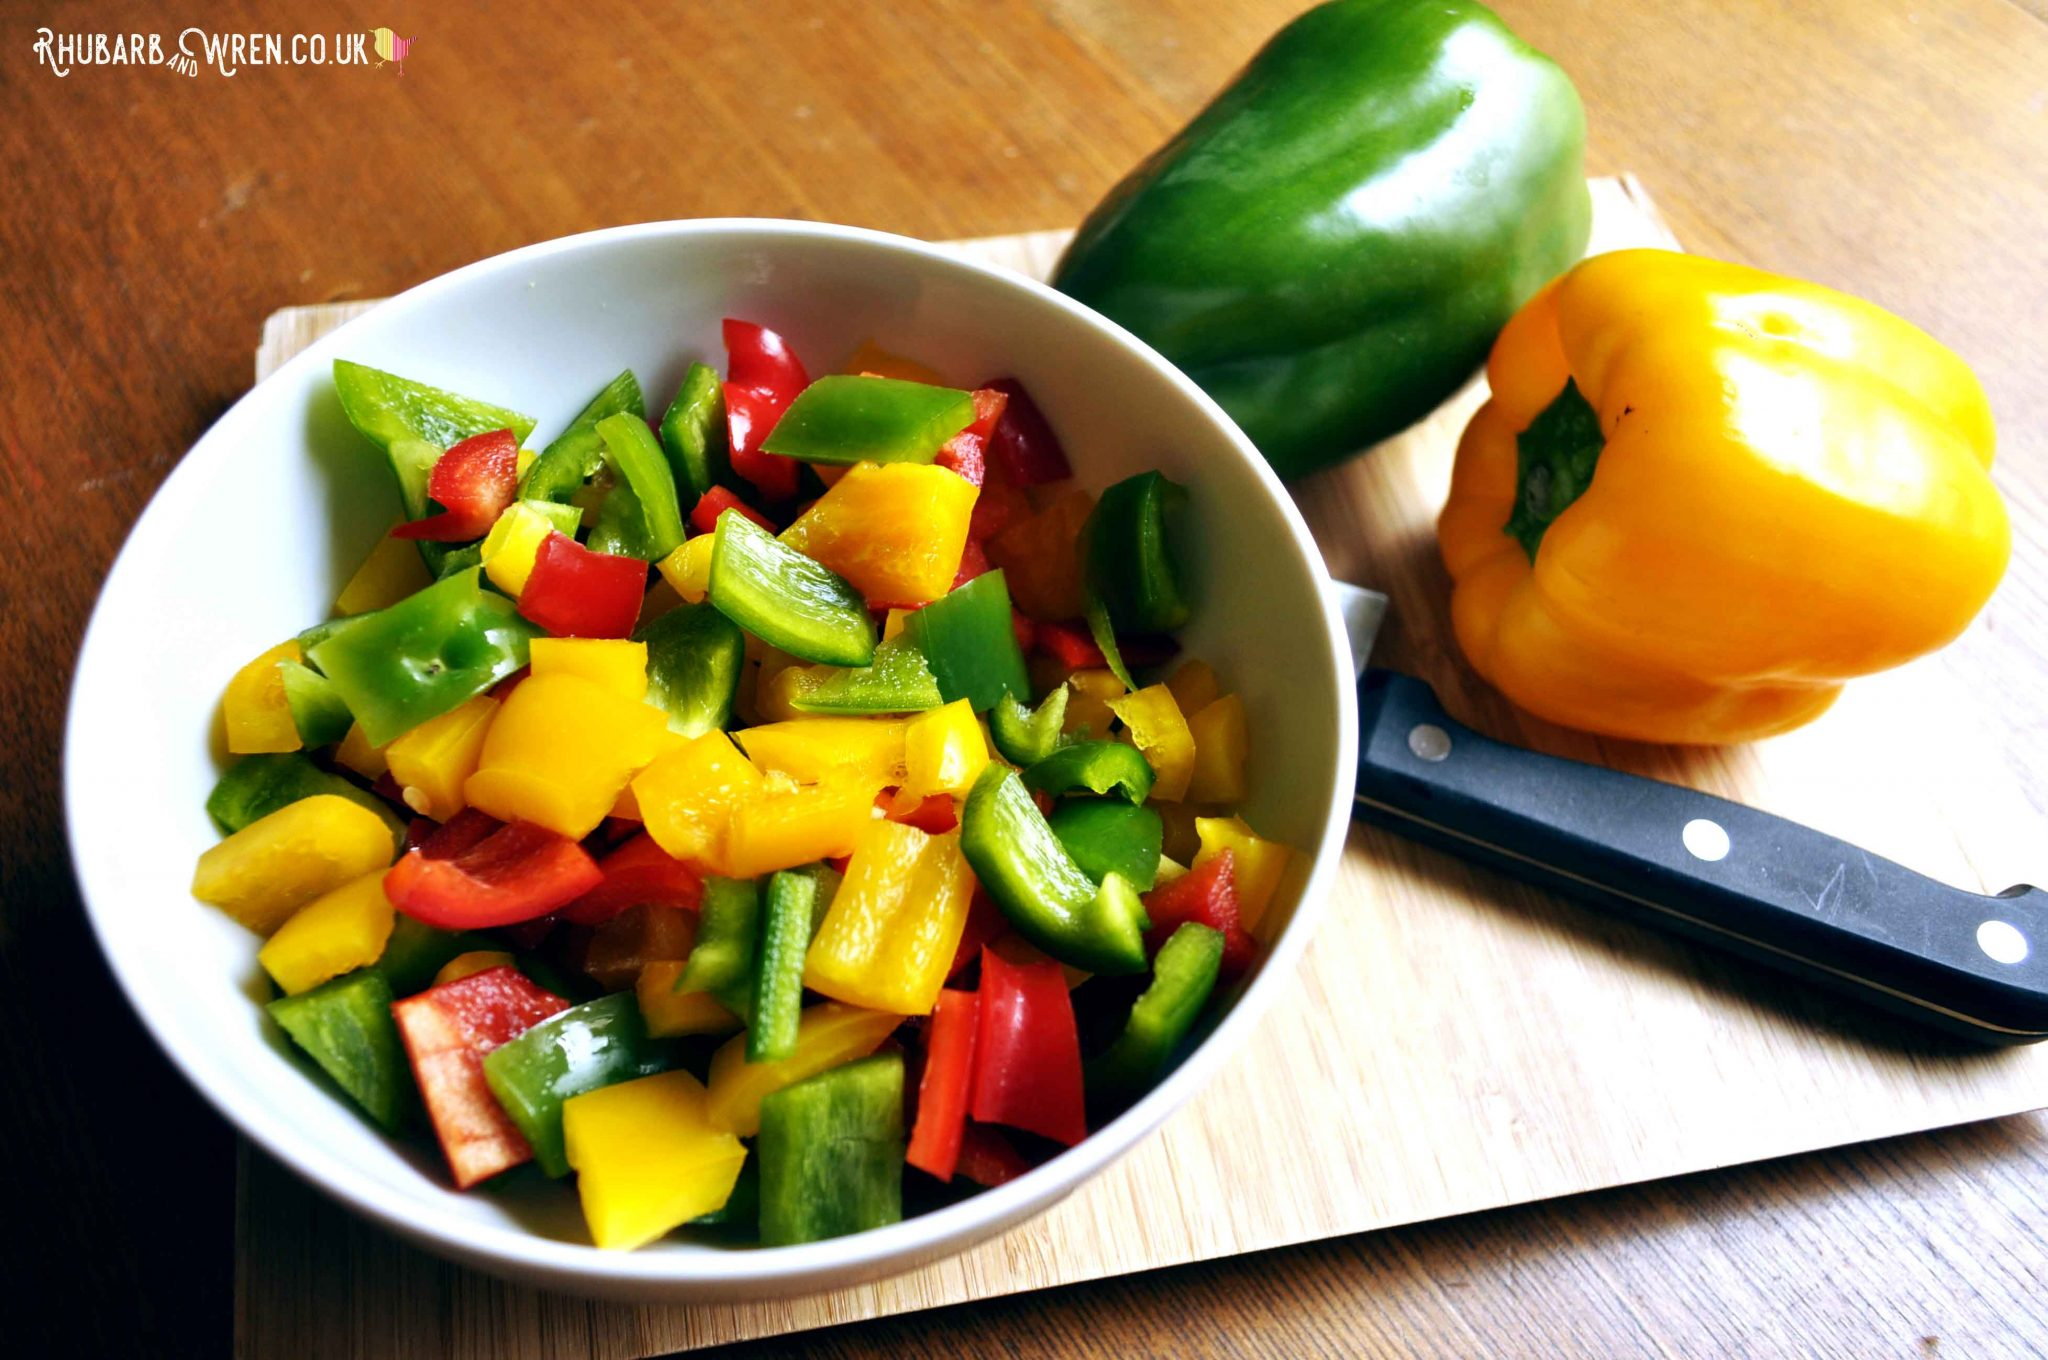 ingredients for a vegan chilli recipe - chopped bell peppers